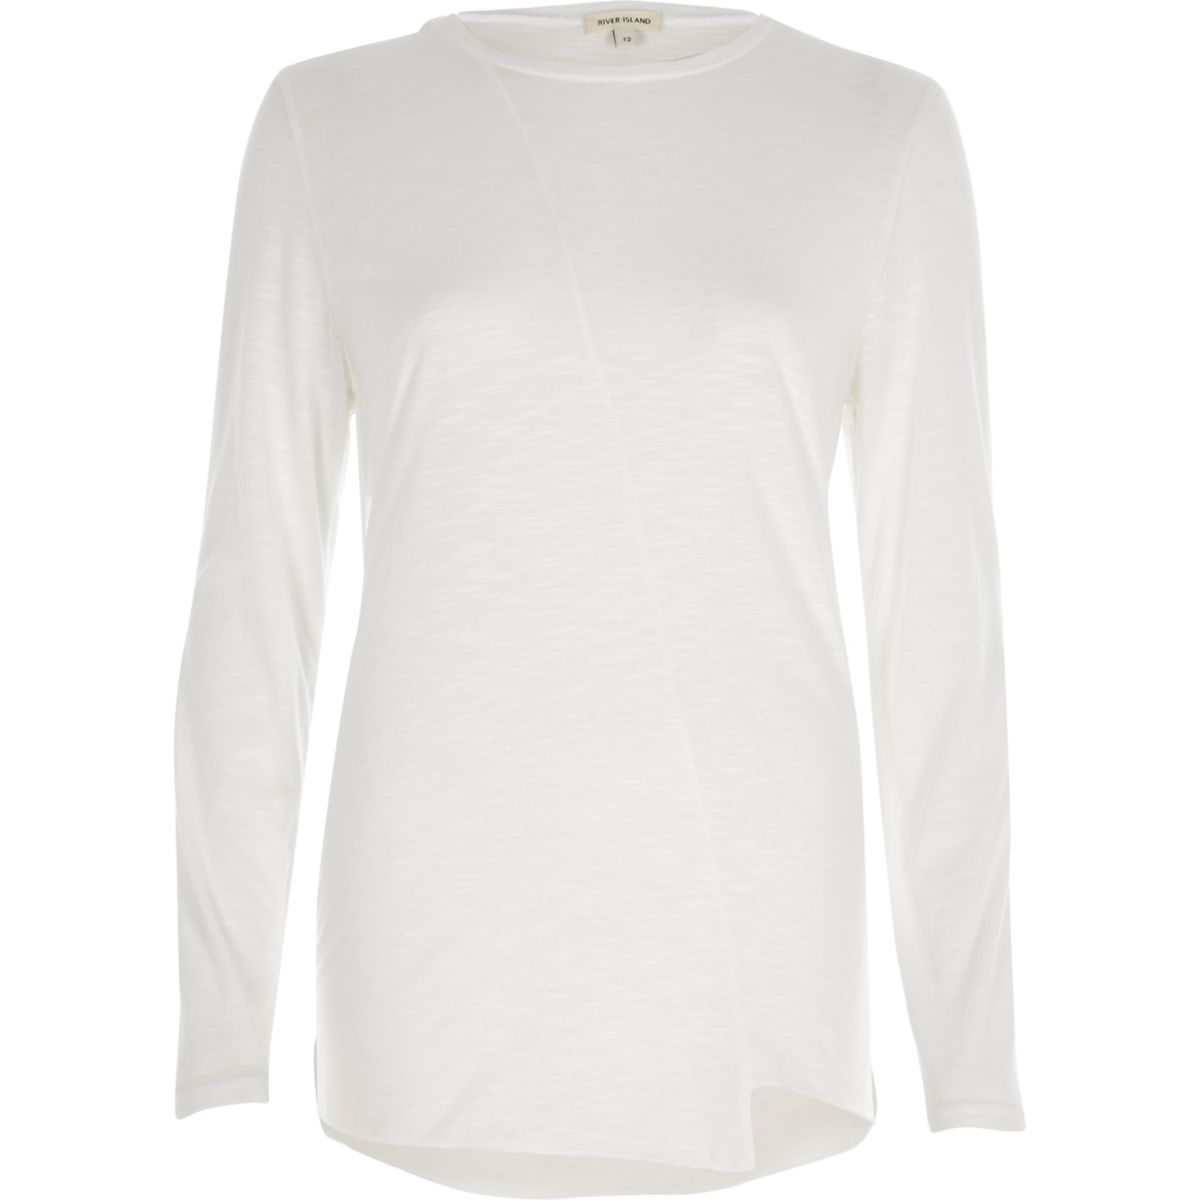 White stepped hem long sleeve T-shirt